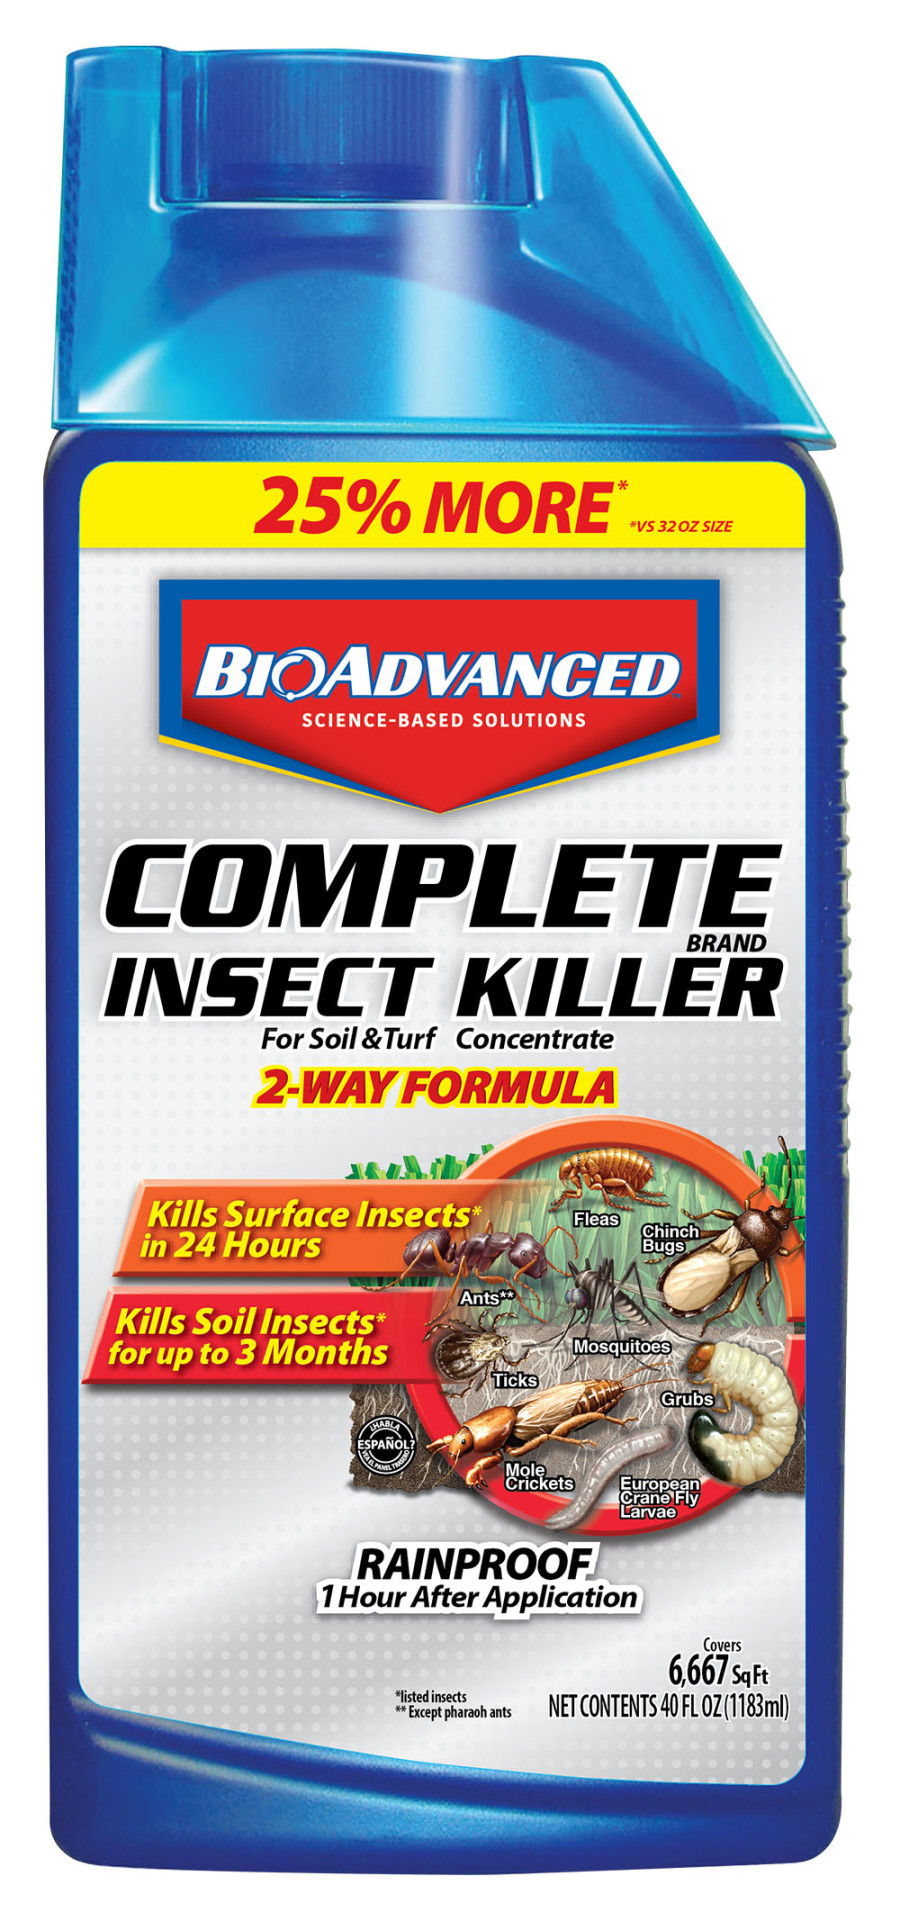 BioAdvanced Complete Insect Killer for Soil & Turf Concentrate 8ea/40 oz